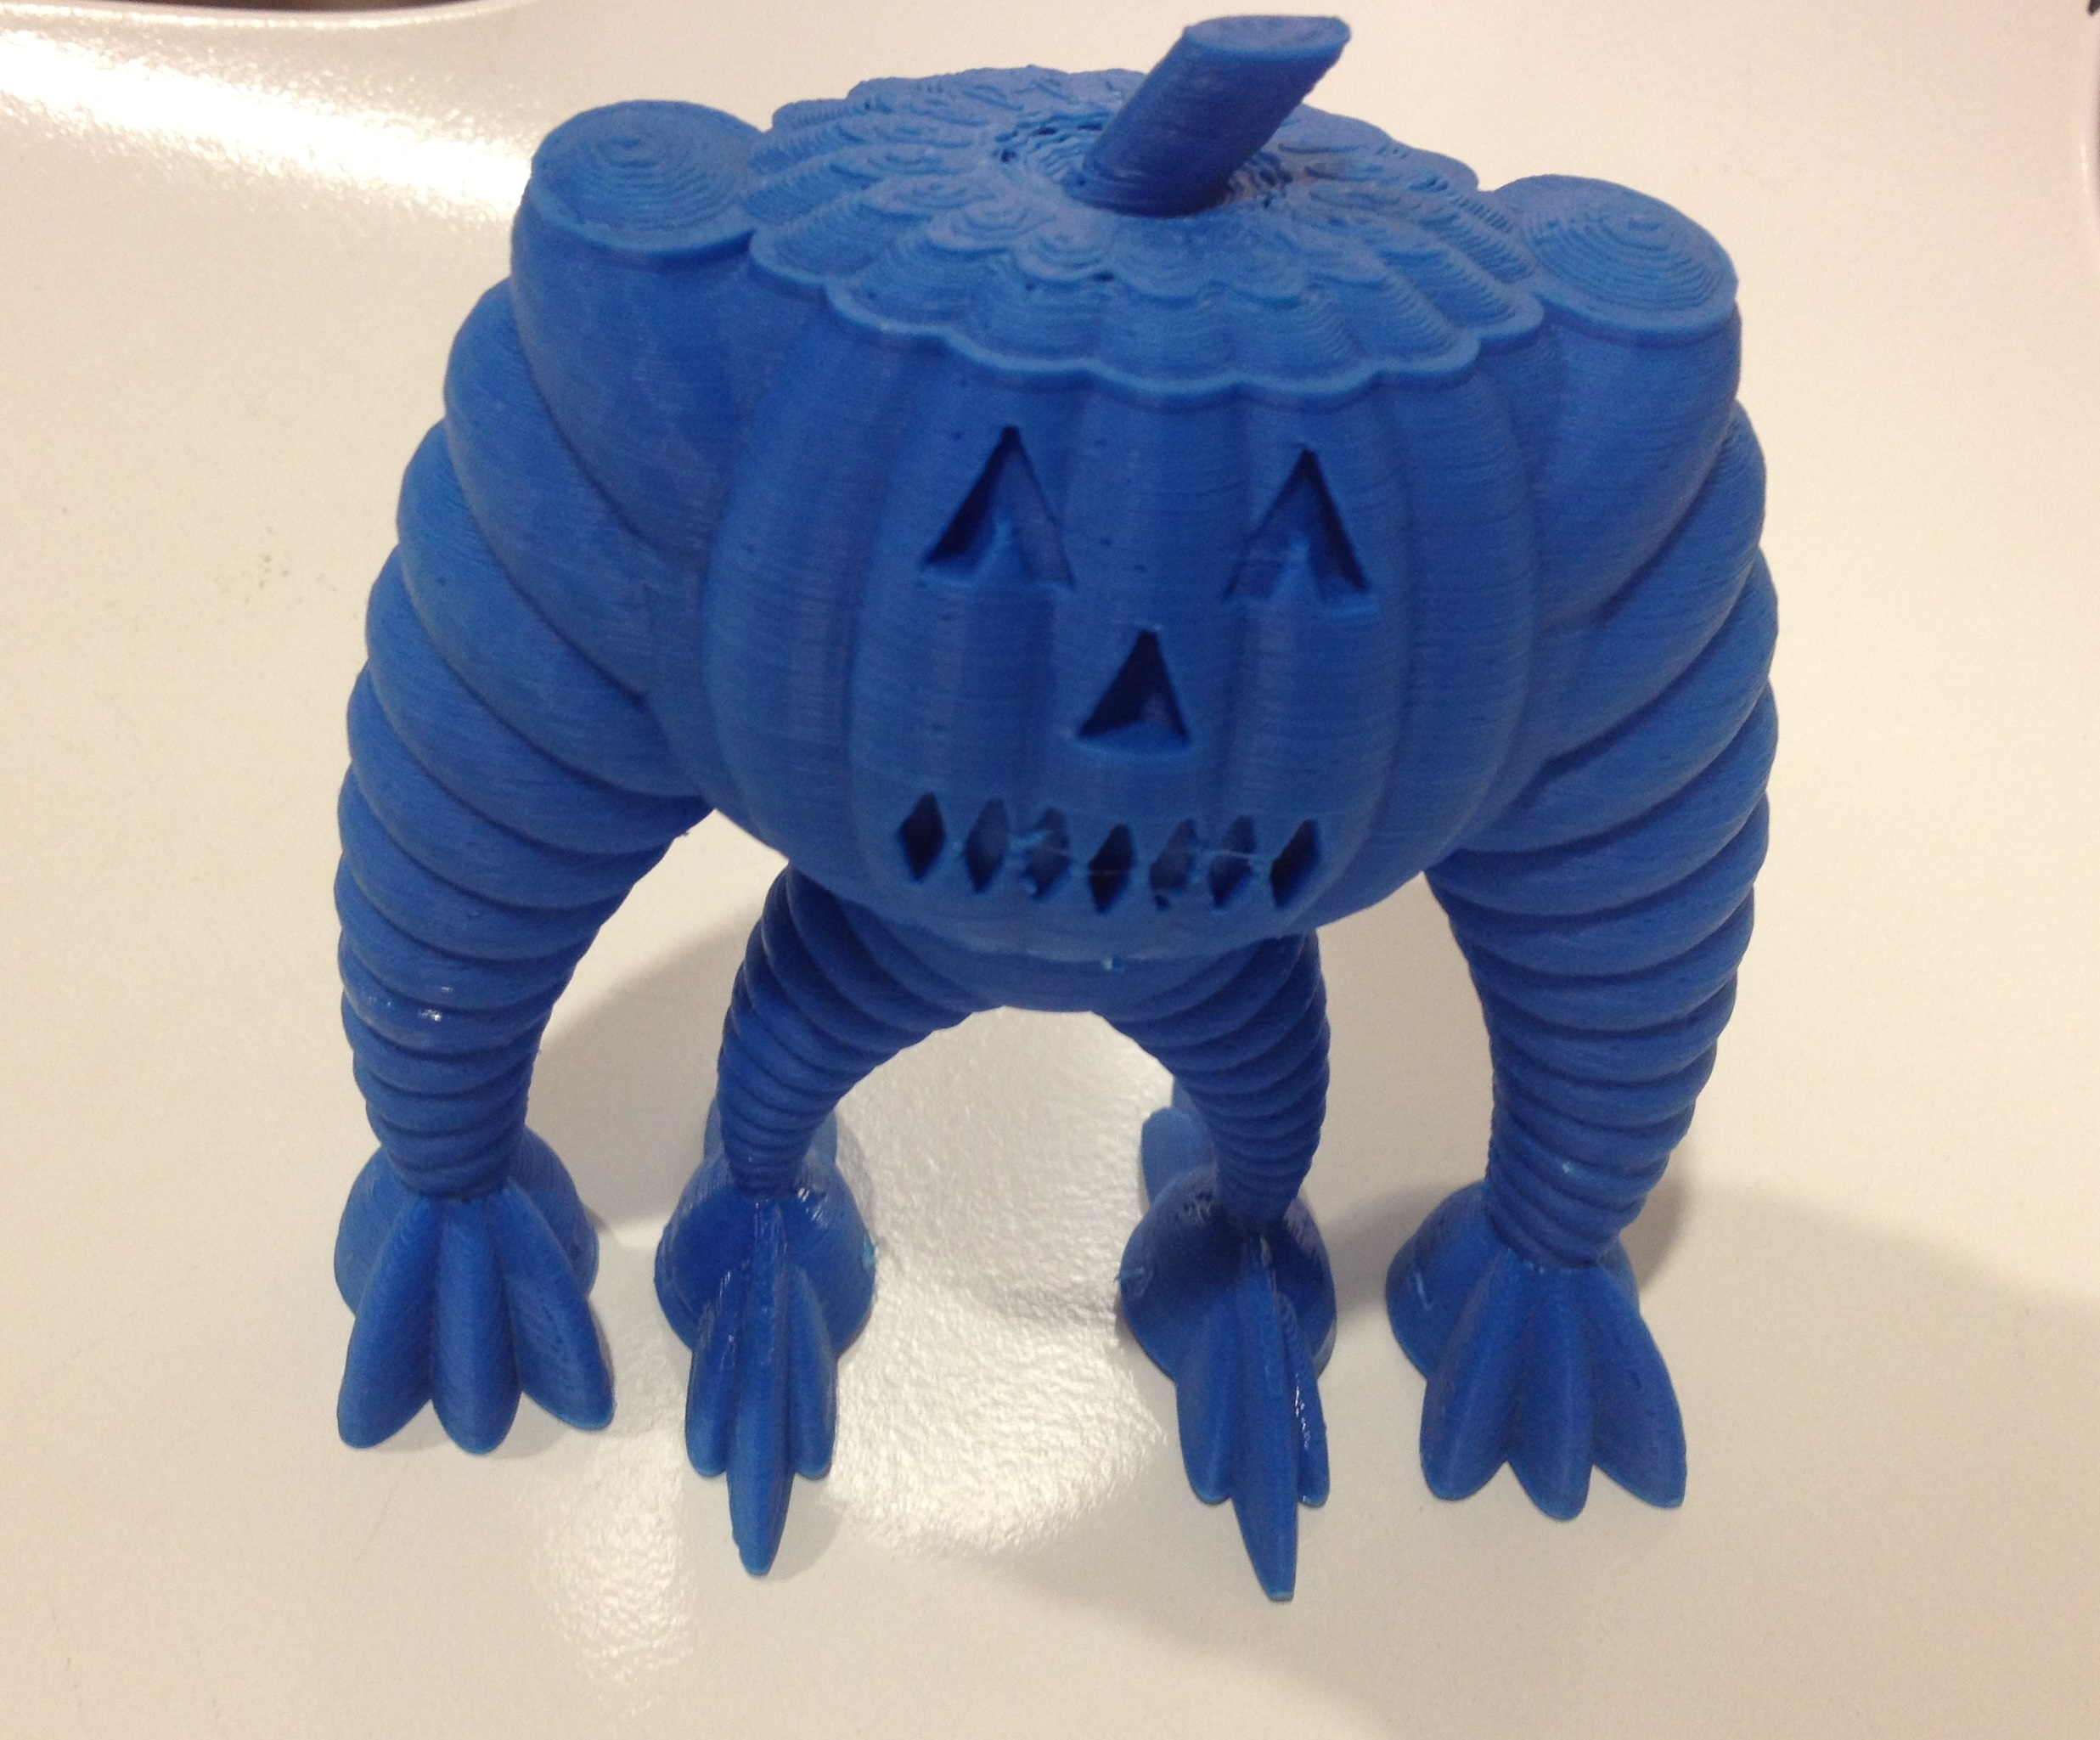 The Great Pumpkin is 3D Printed